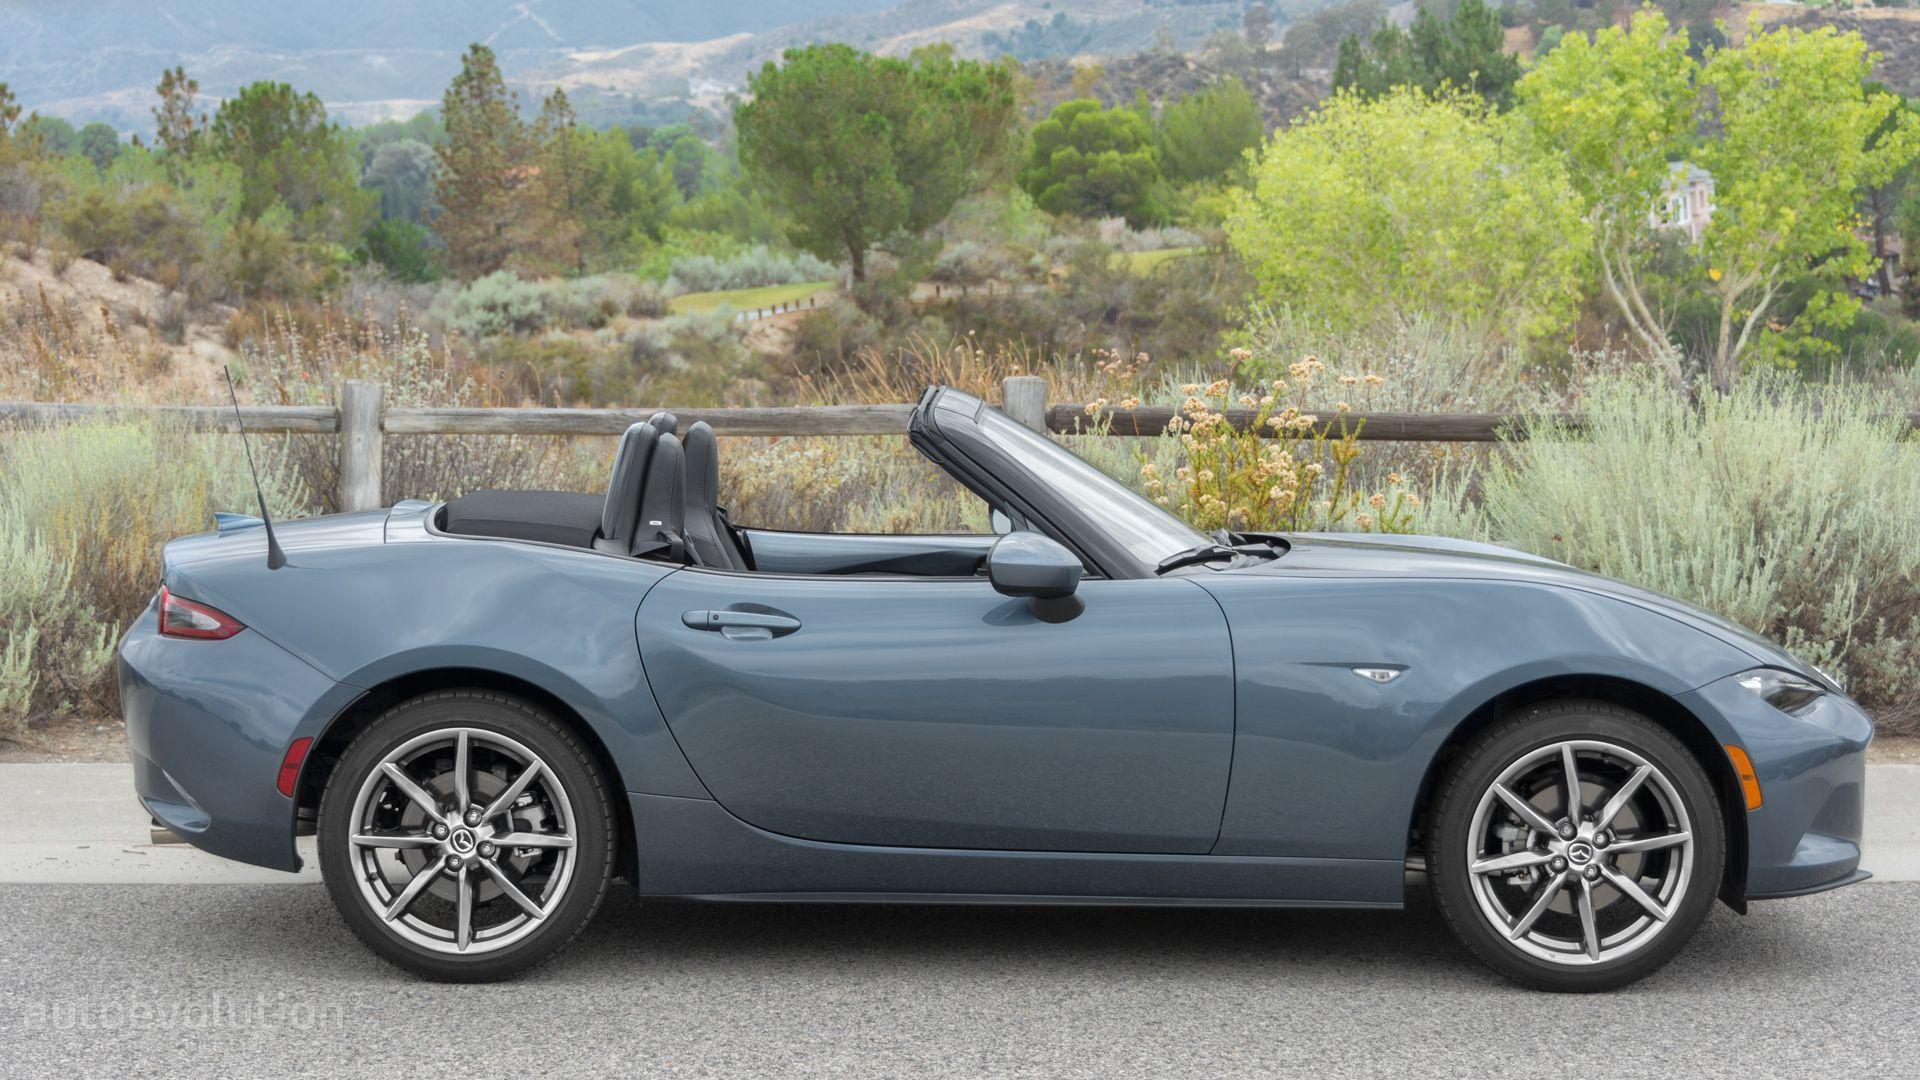 2016 Mazda MX-5 Miata HD Wallpapers: Keyword - Kodo - autoevolution